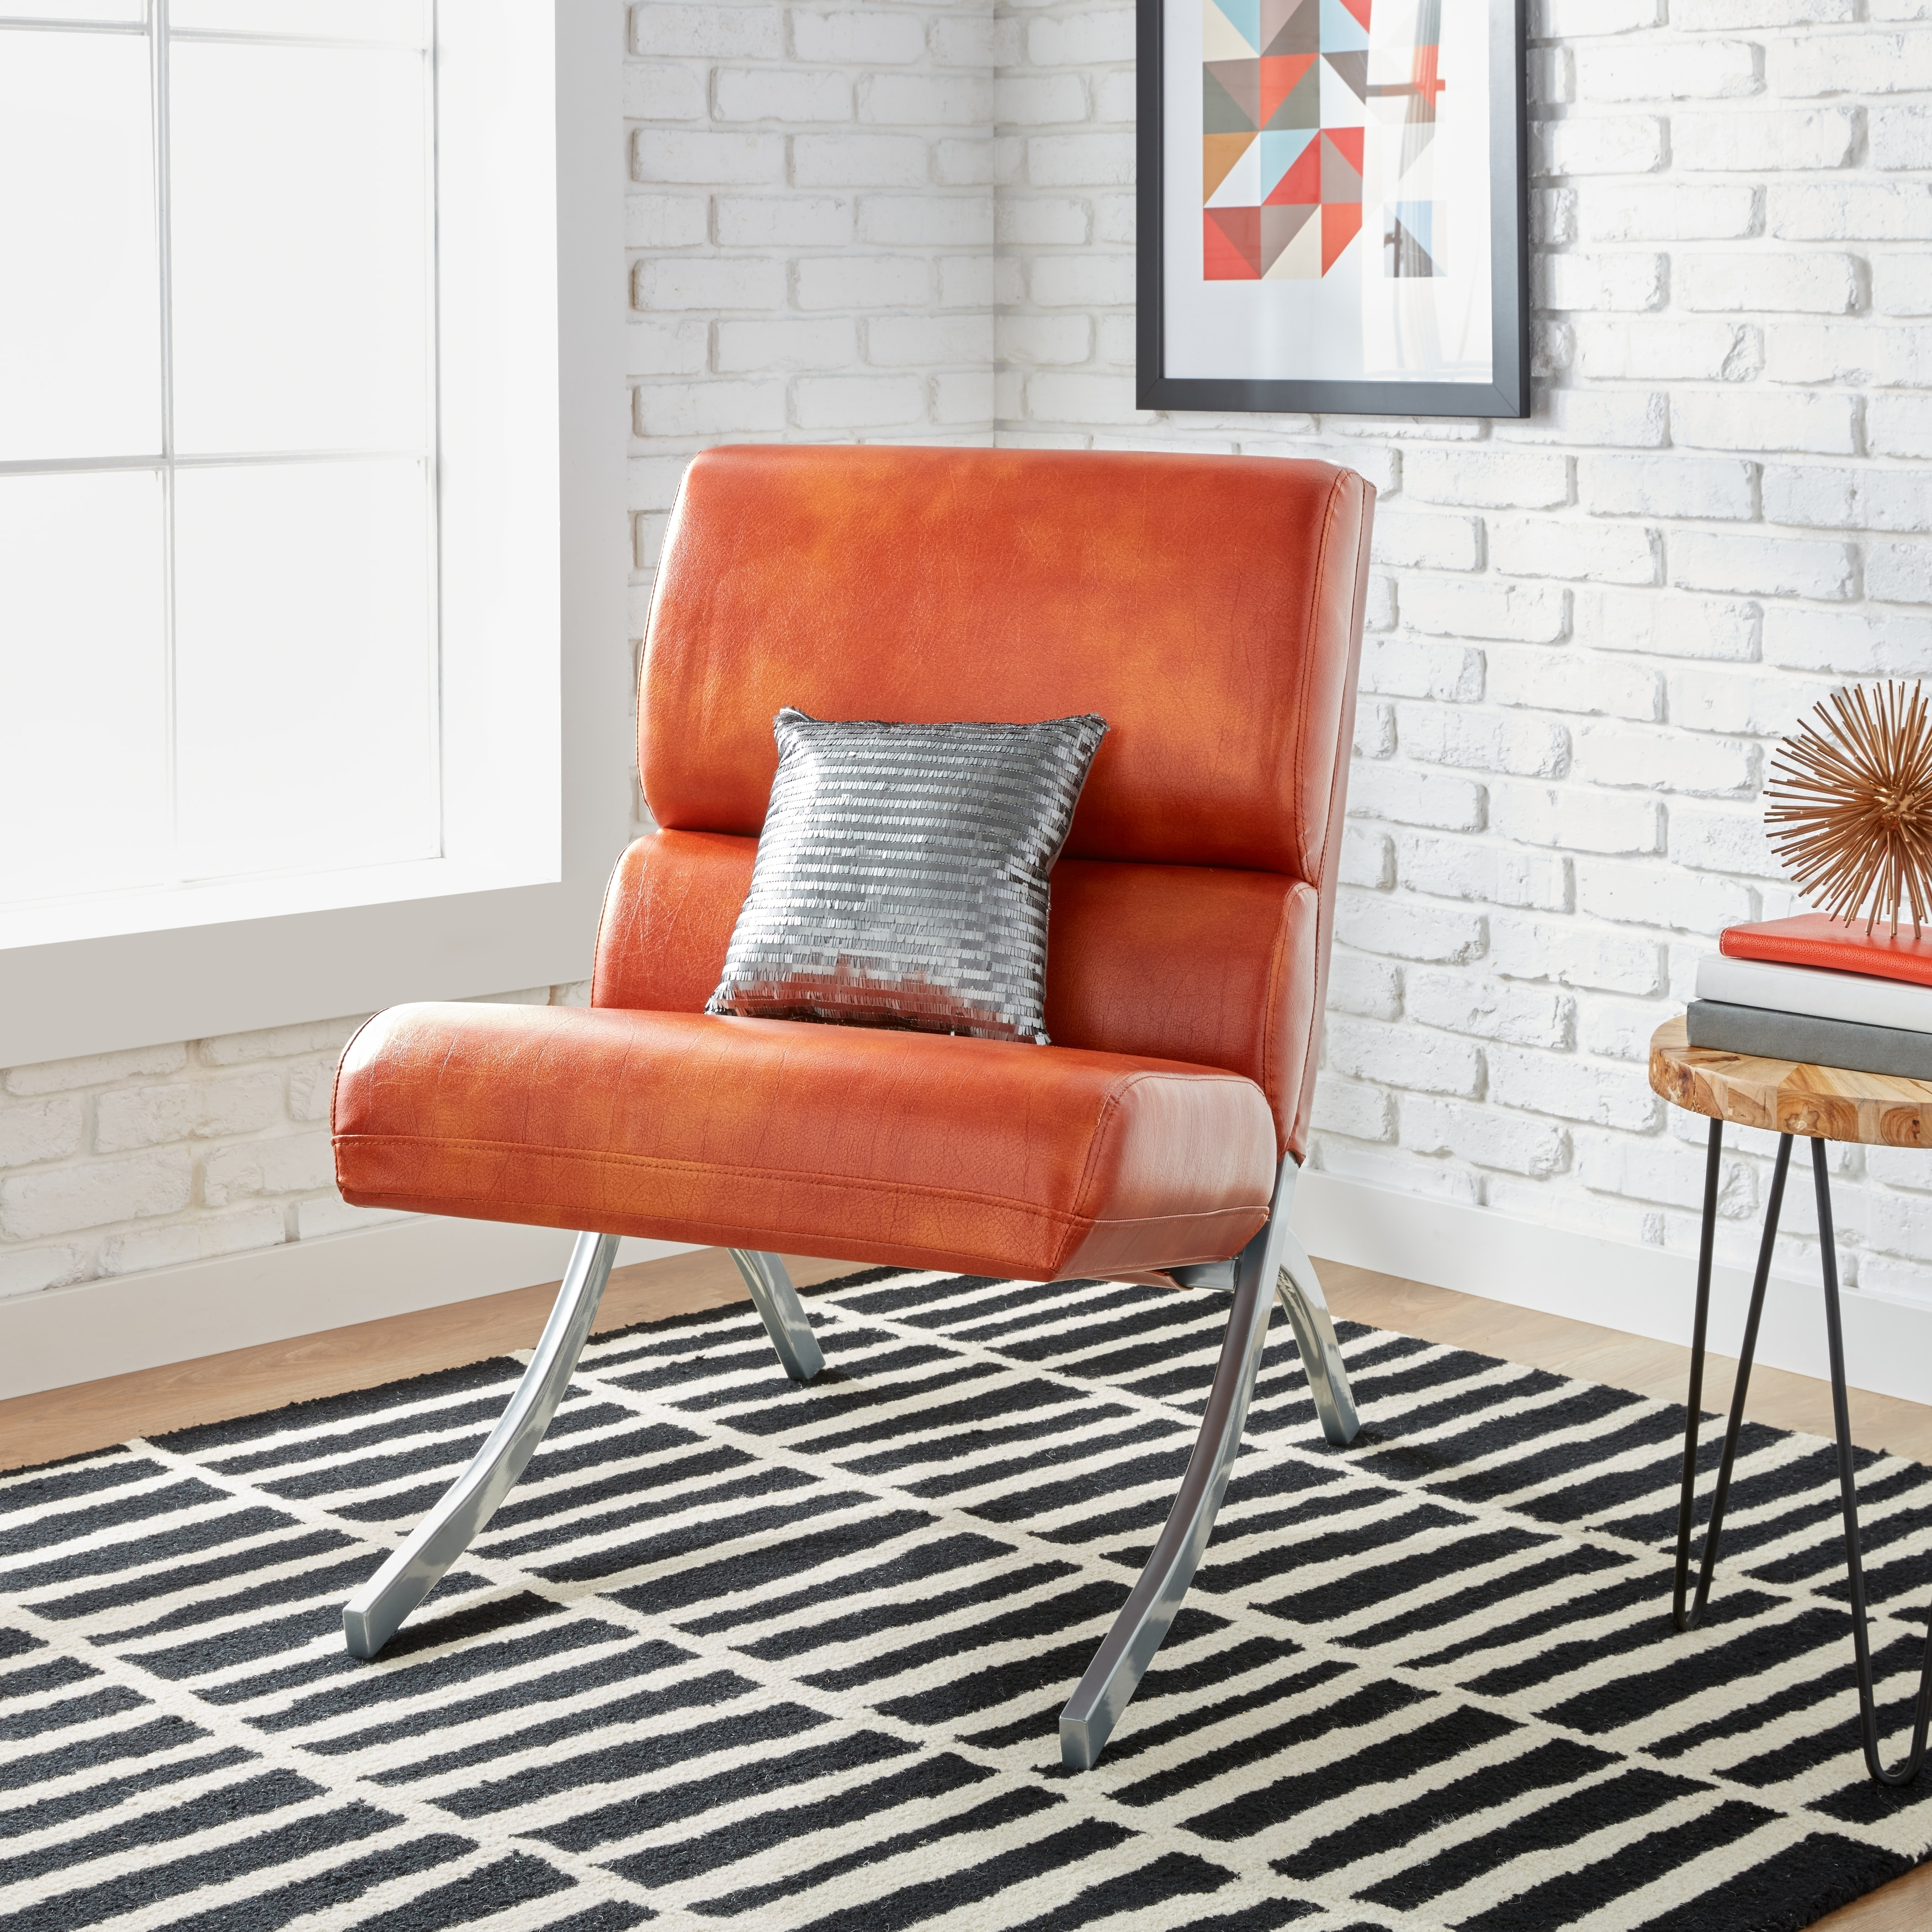 Shop Clay Alder Home Rialto Rust Faux Leather Chair - Free Shipping Today - Overstock.com - 6527279 & Shop Clay Alder Home Rialto Rust Faux Leather Chair - Free Shipping ...